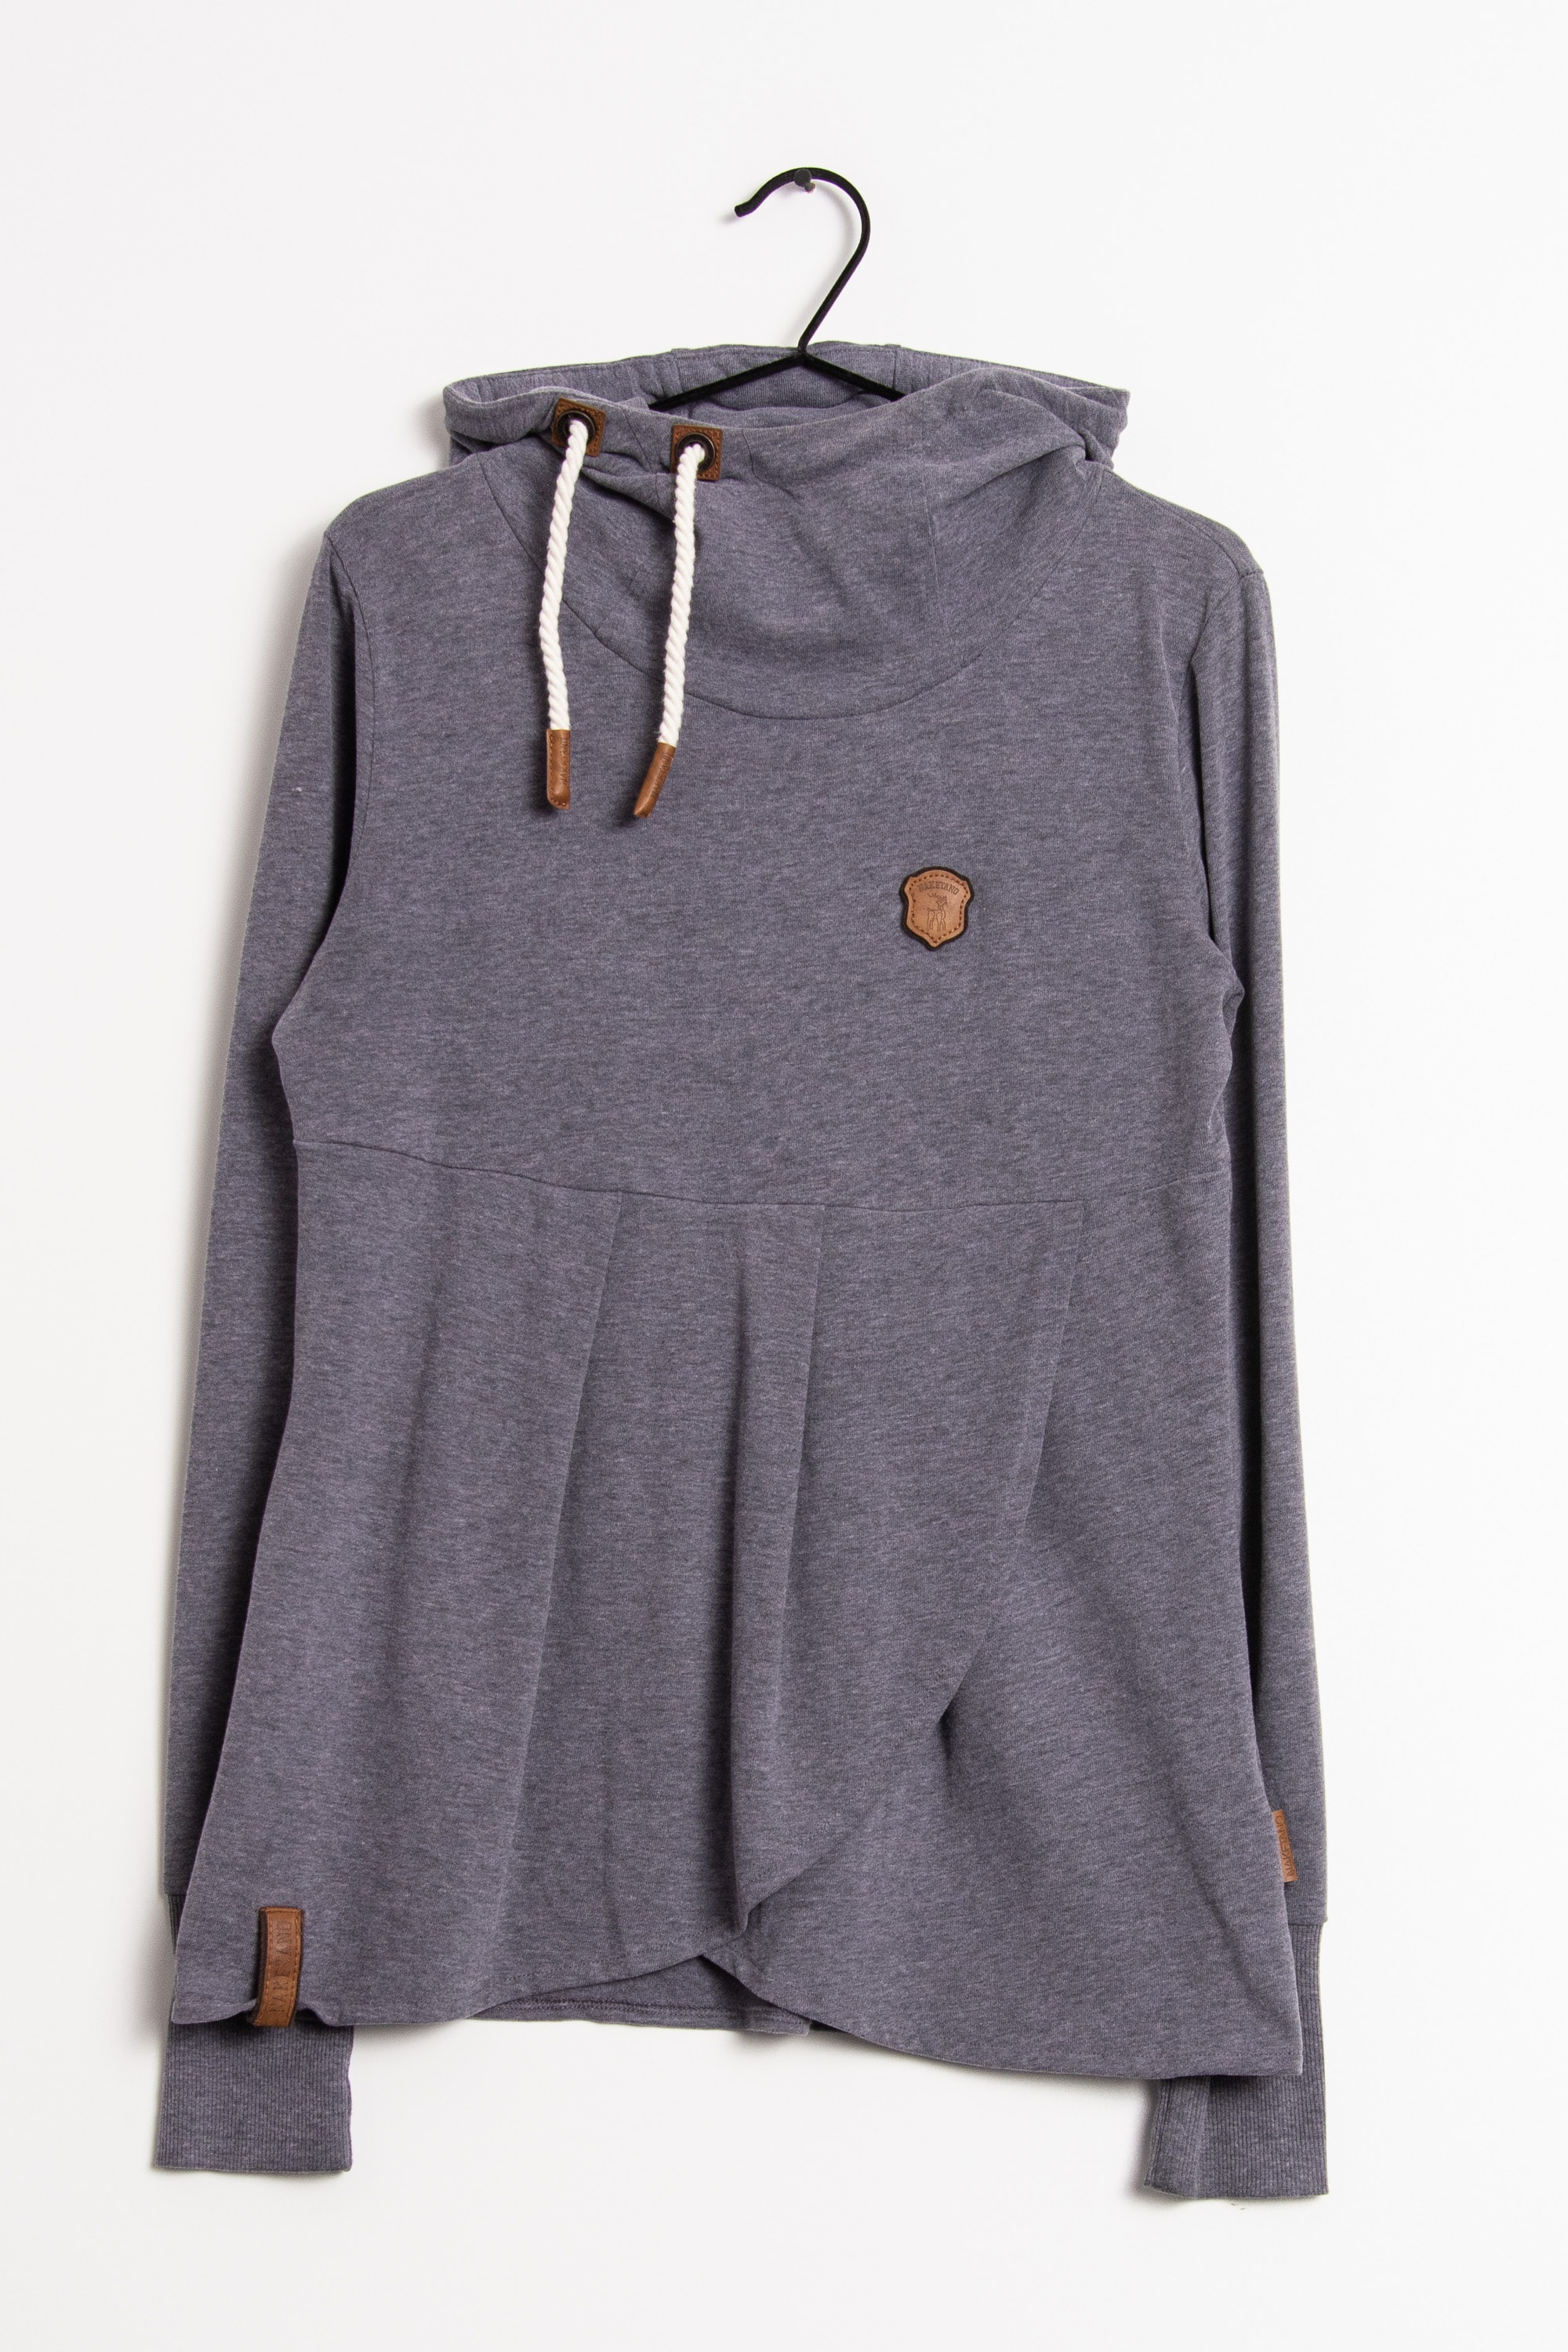 Naketano Sweat / Fleece Grau Gr.M